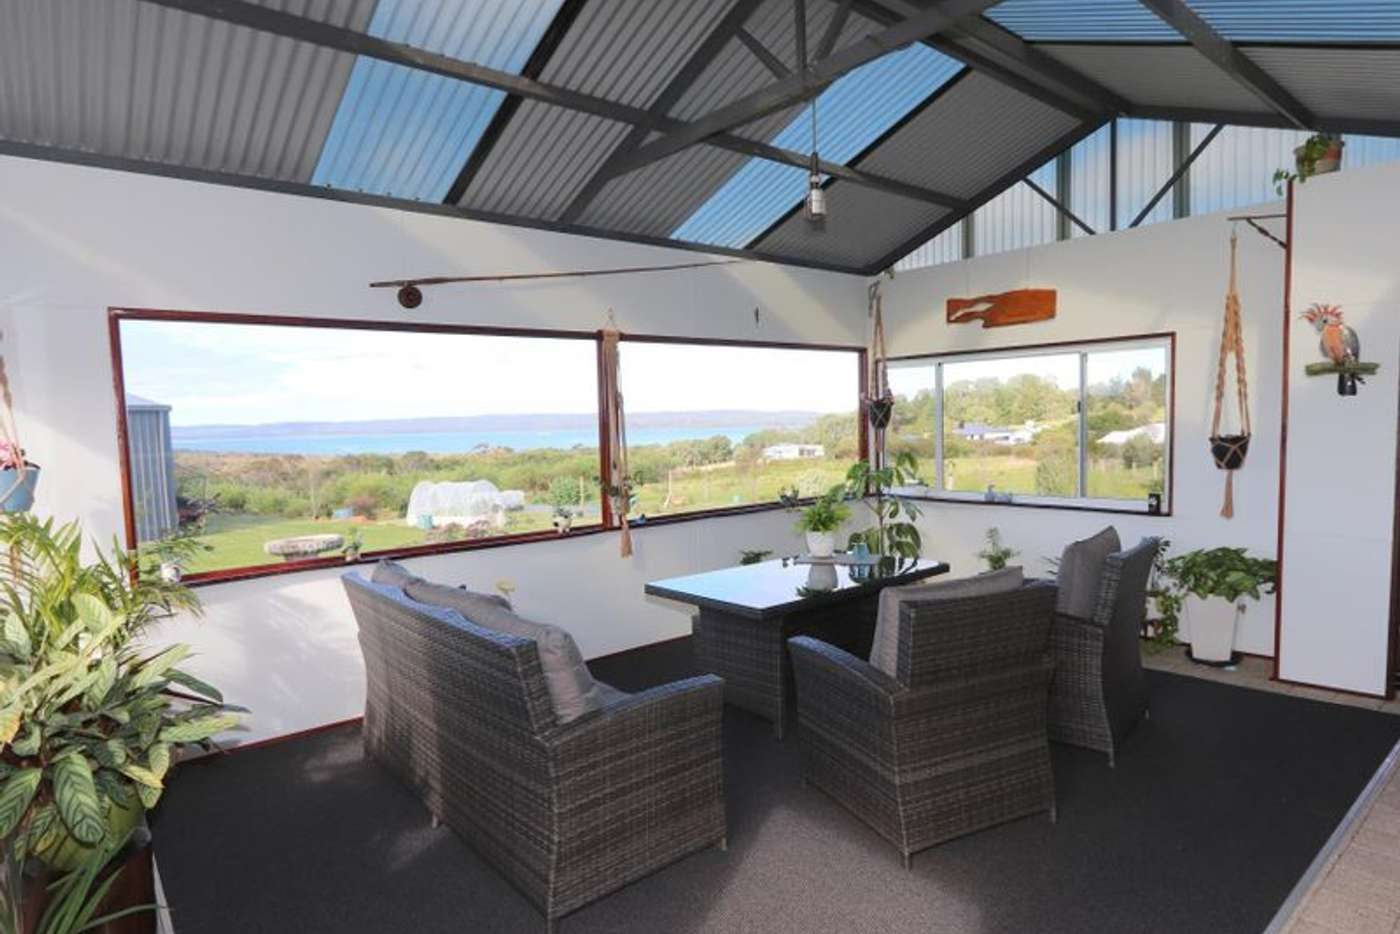 Seventh view of Homely house listing, 65 Beaufortia Gardens, Denmark WA 6333